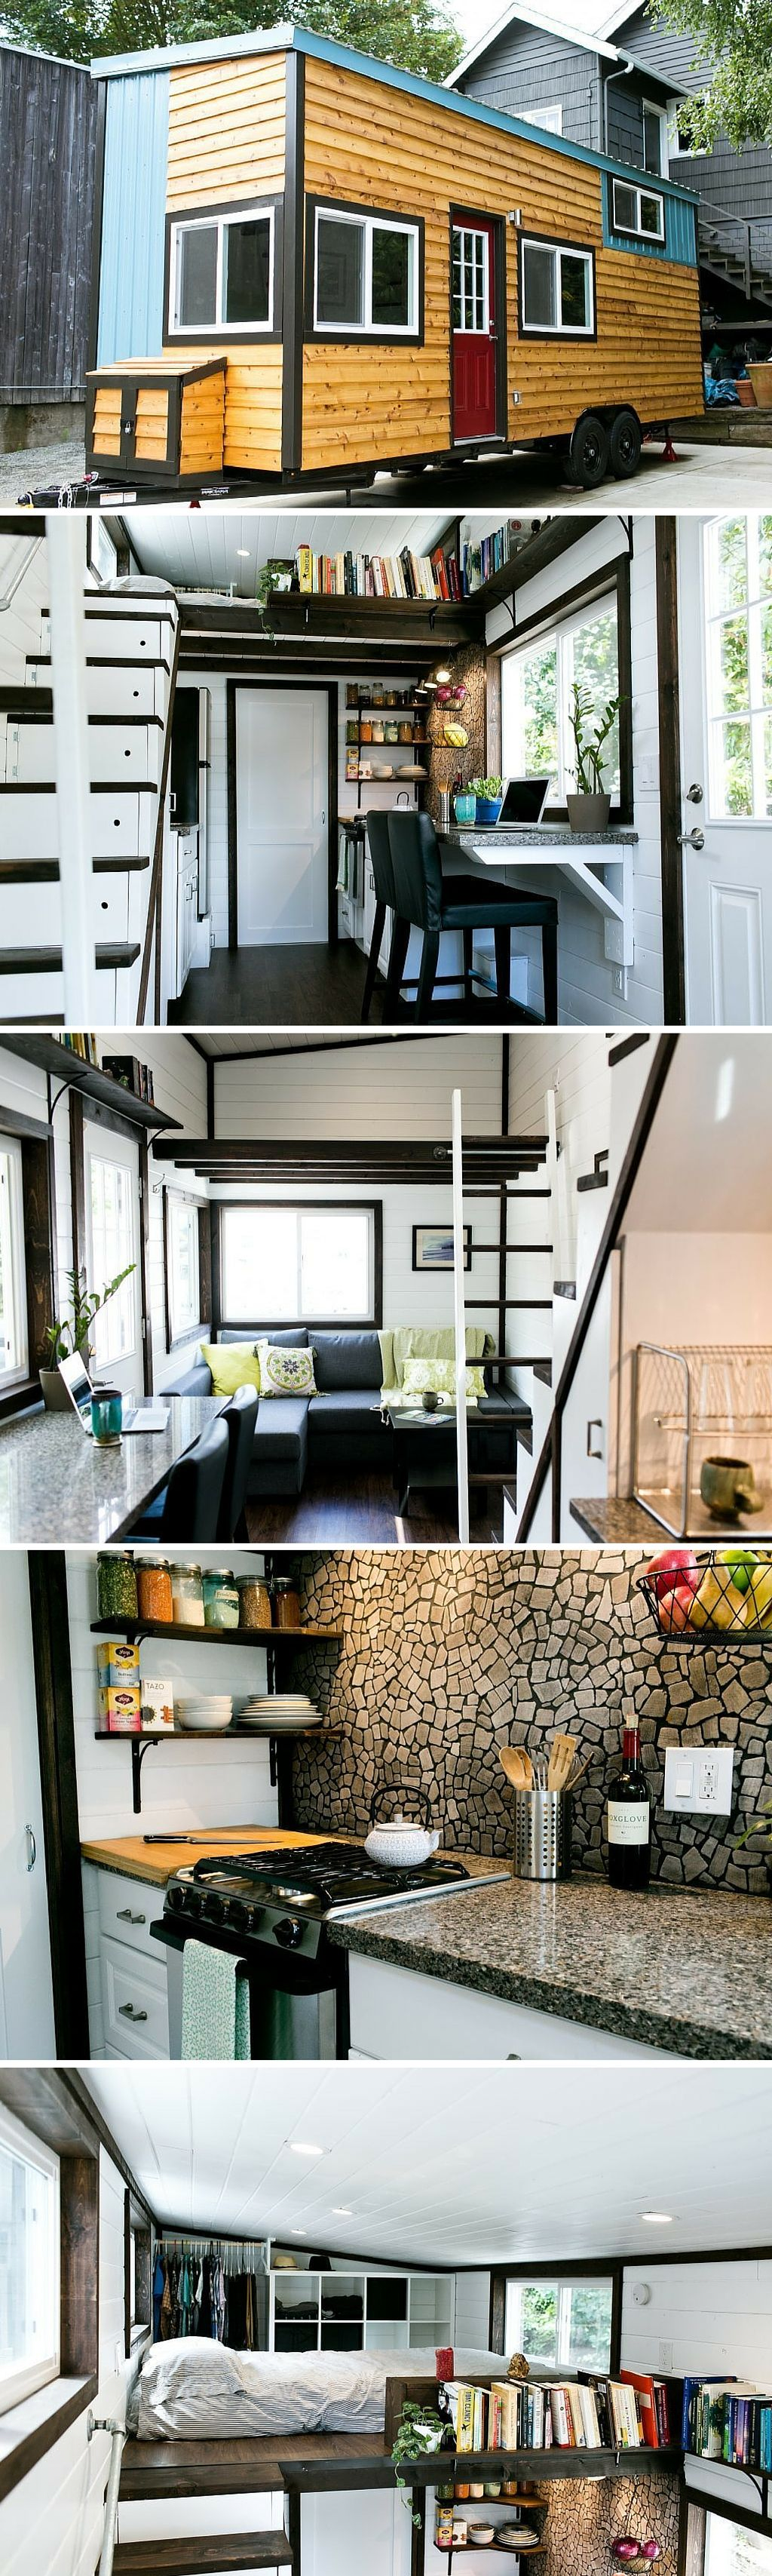 Not Your Average Tiny House: a unique, luxury tiny house with a ...